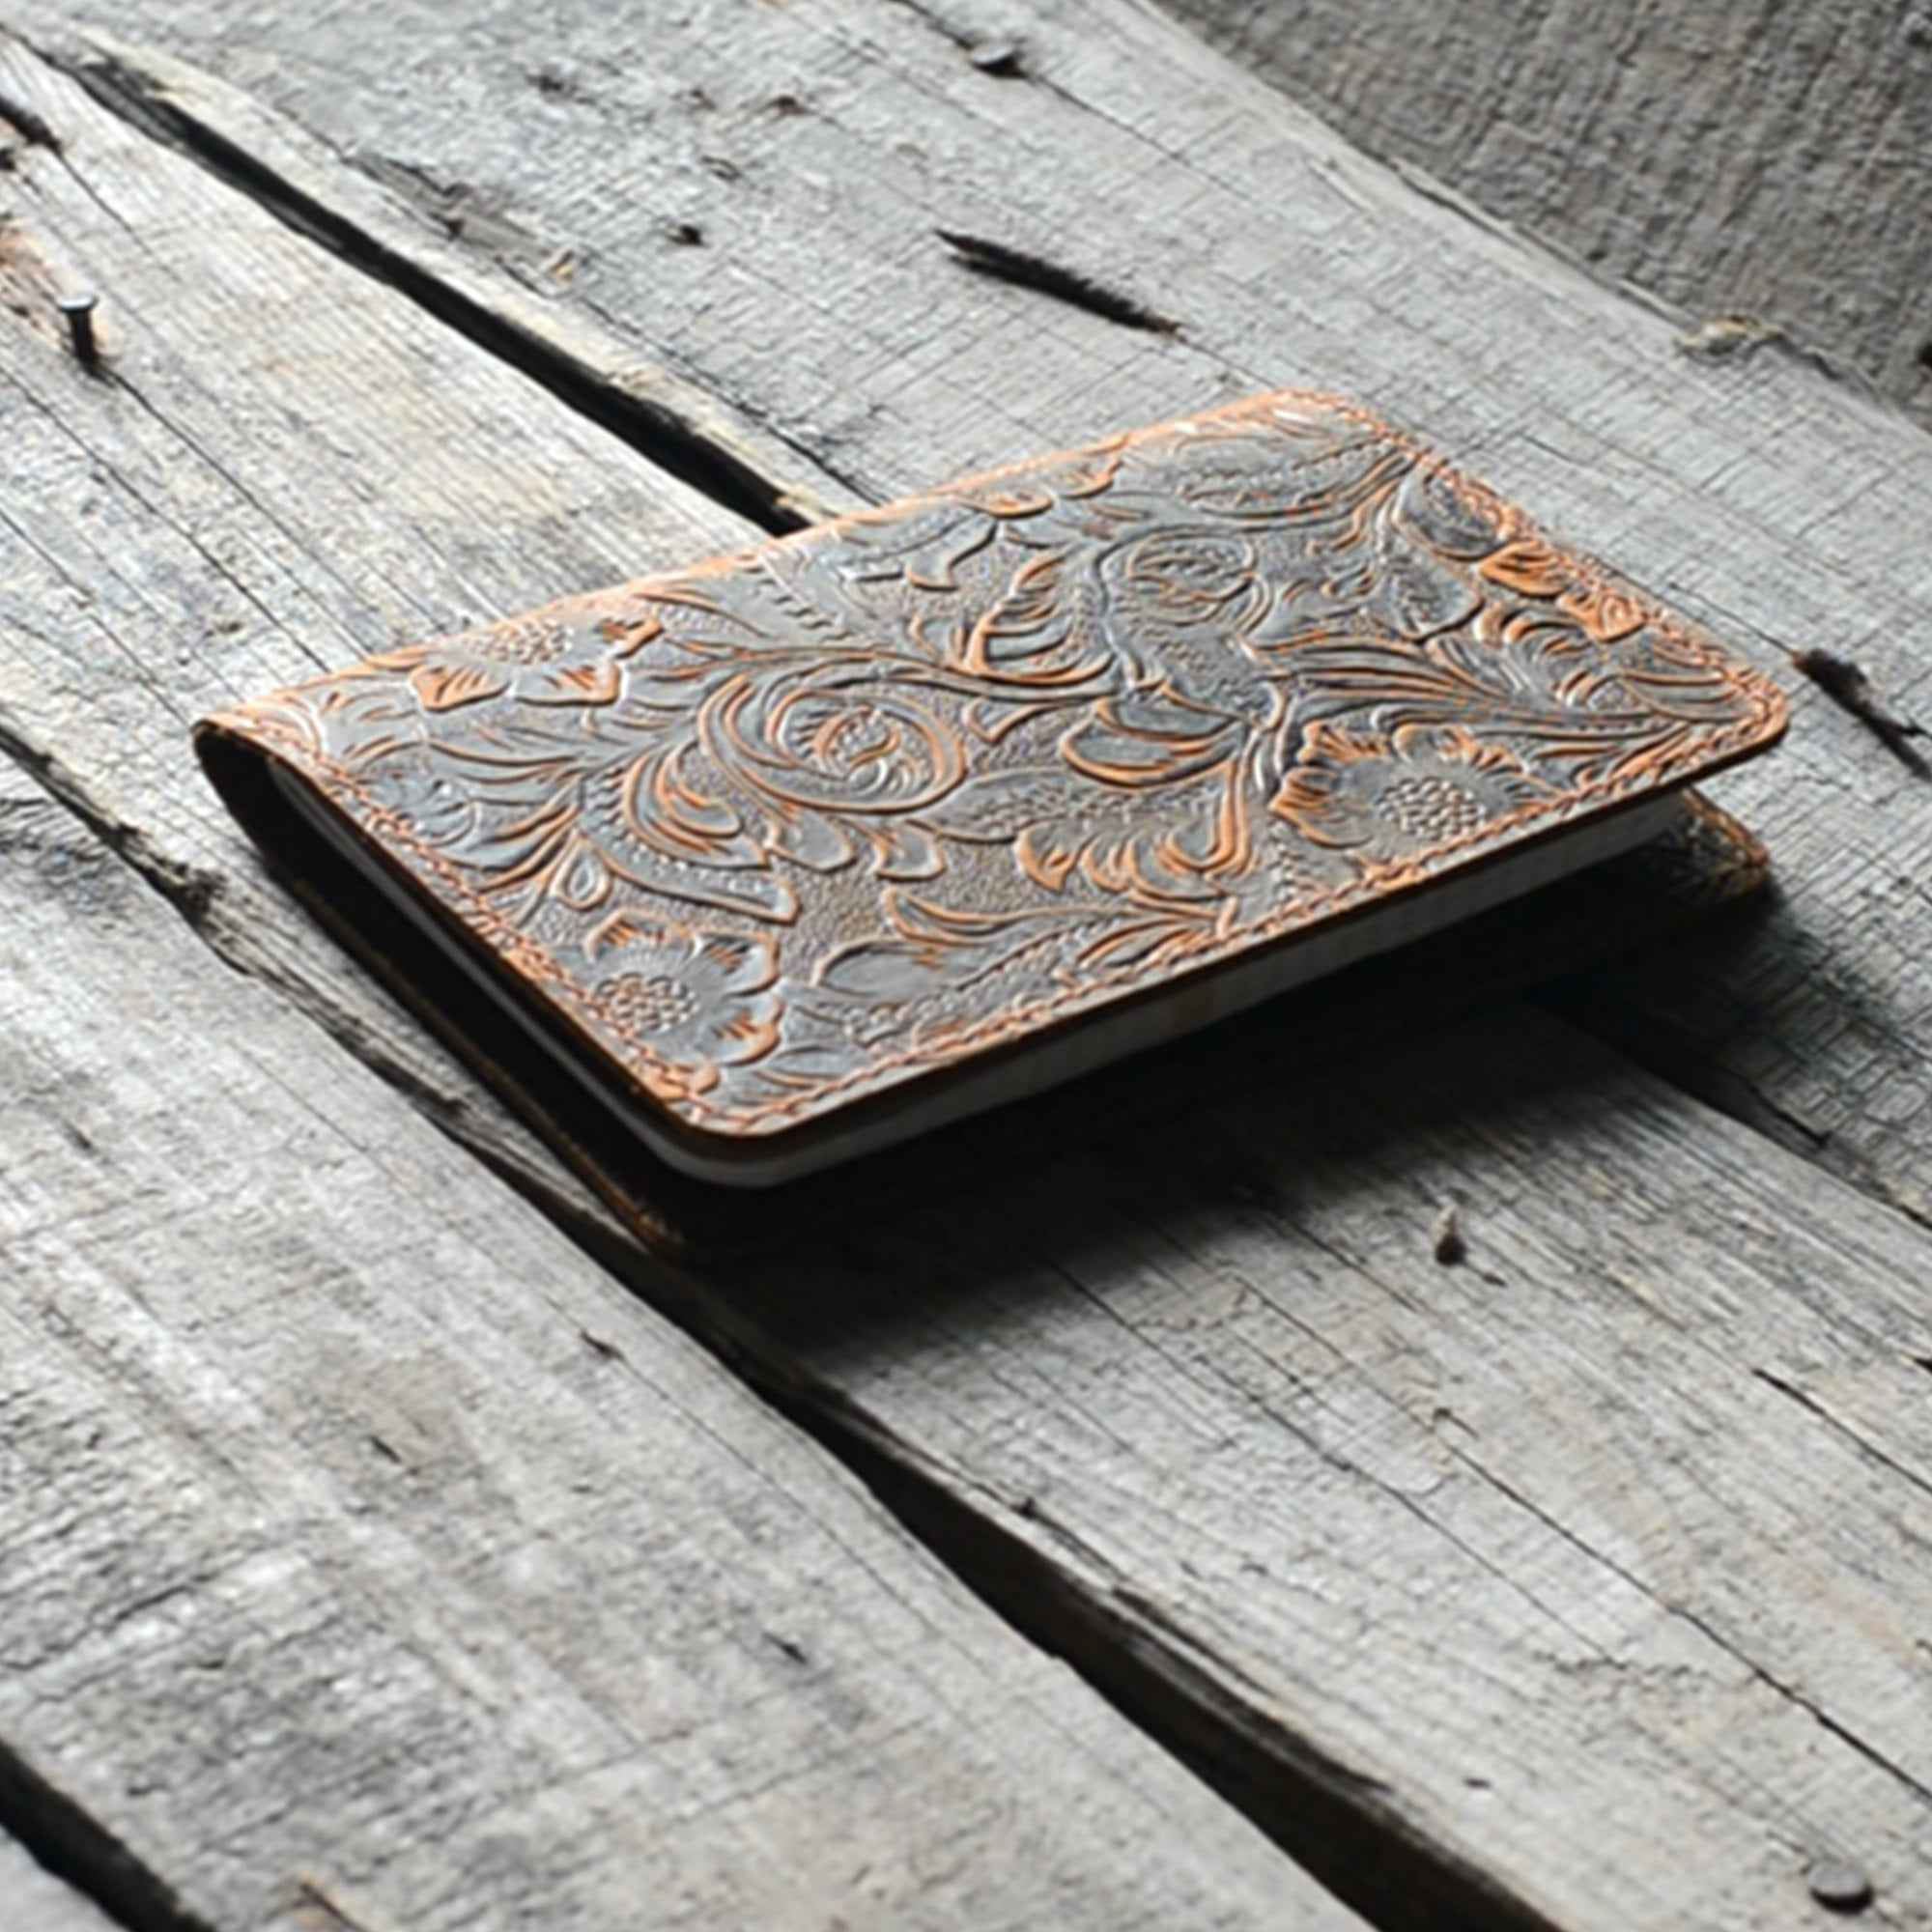 Distressed Genuine Leather Travel Journal Field Notes Cover  for 3.5 x 5.5 Notebook Moleskine Cahier Flower brown